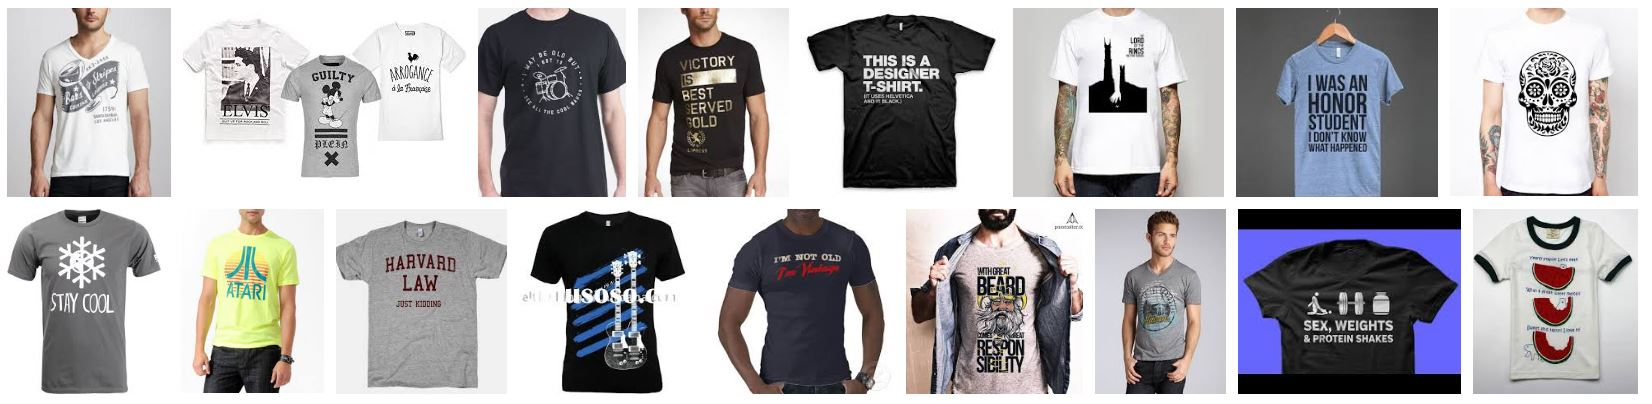 Tee Shirts Online